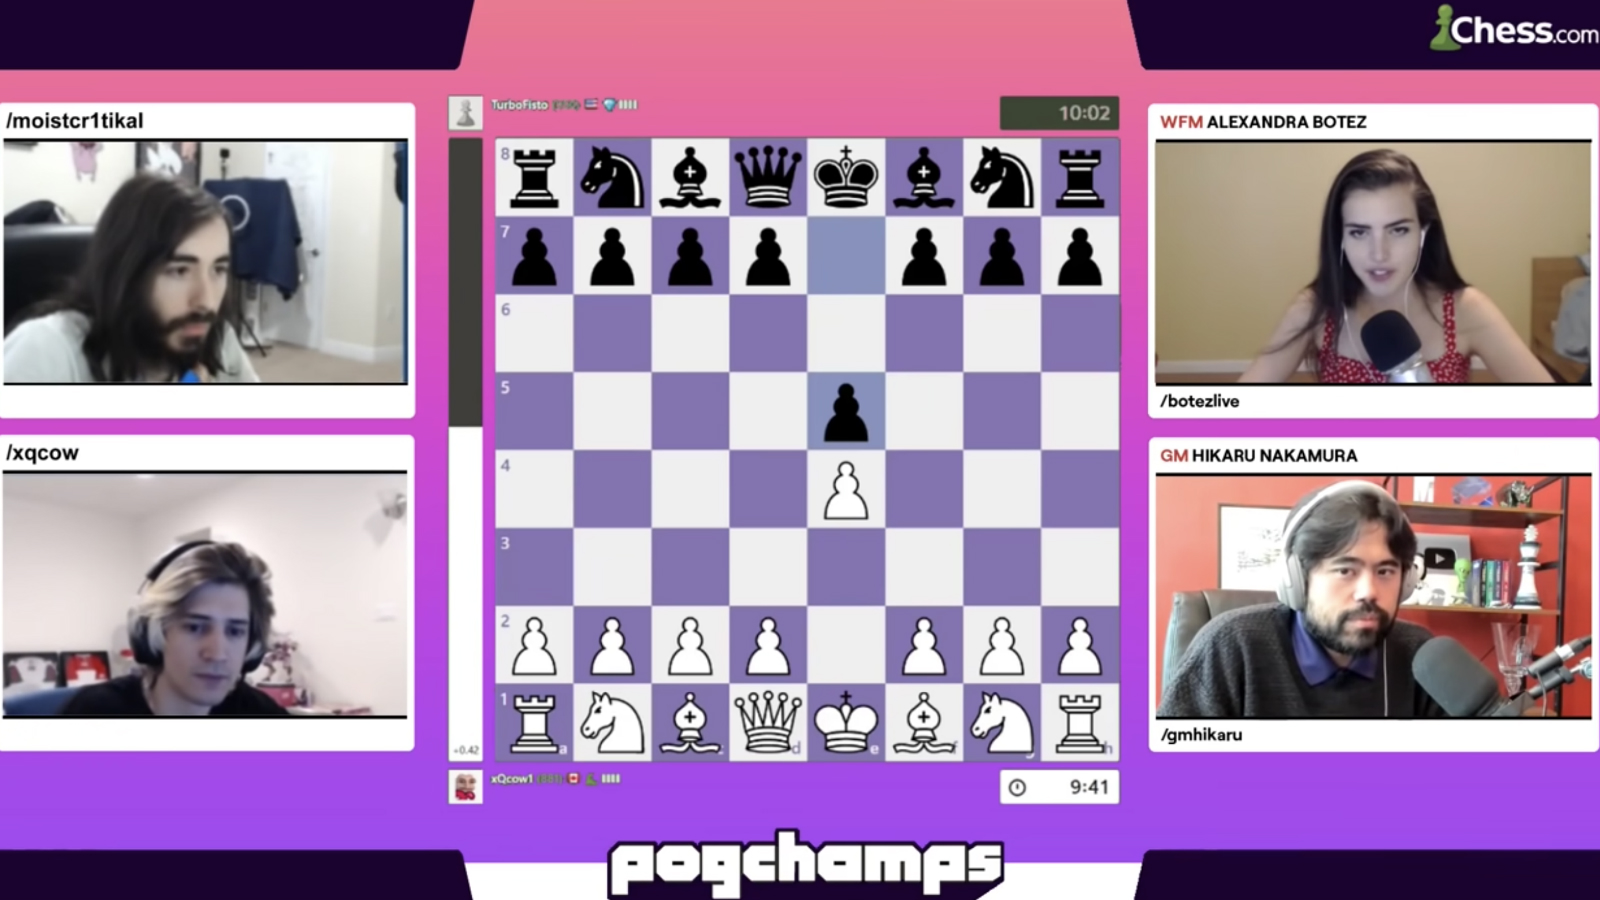 xQc being checkmated on chess